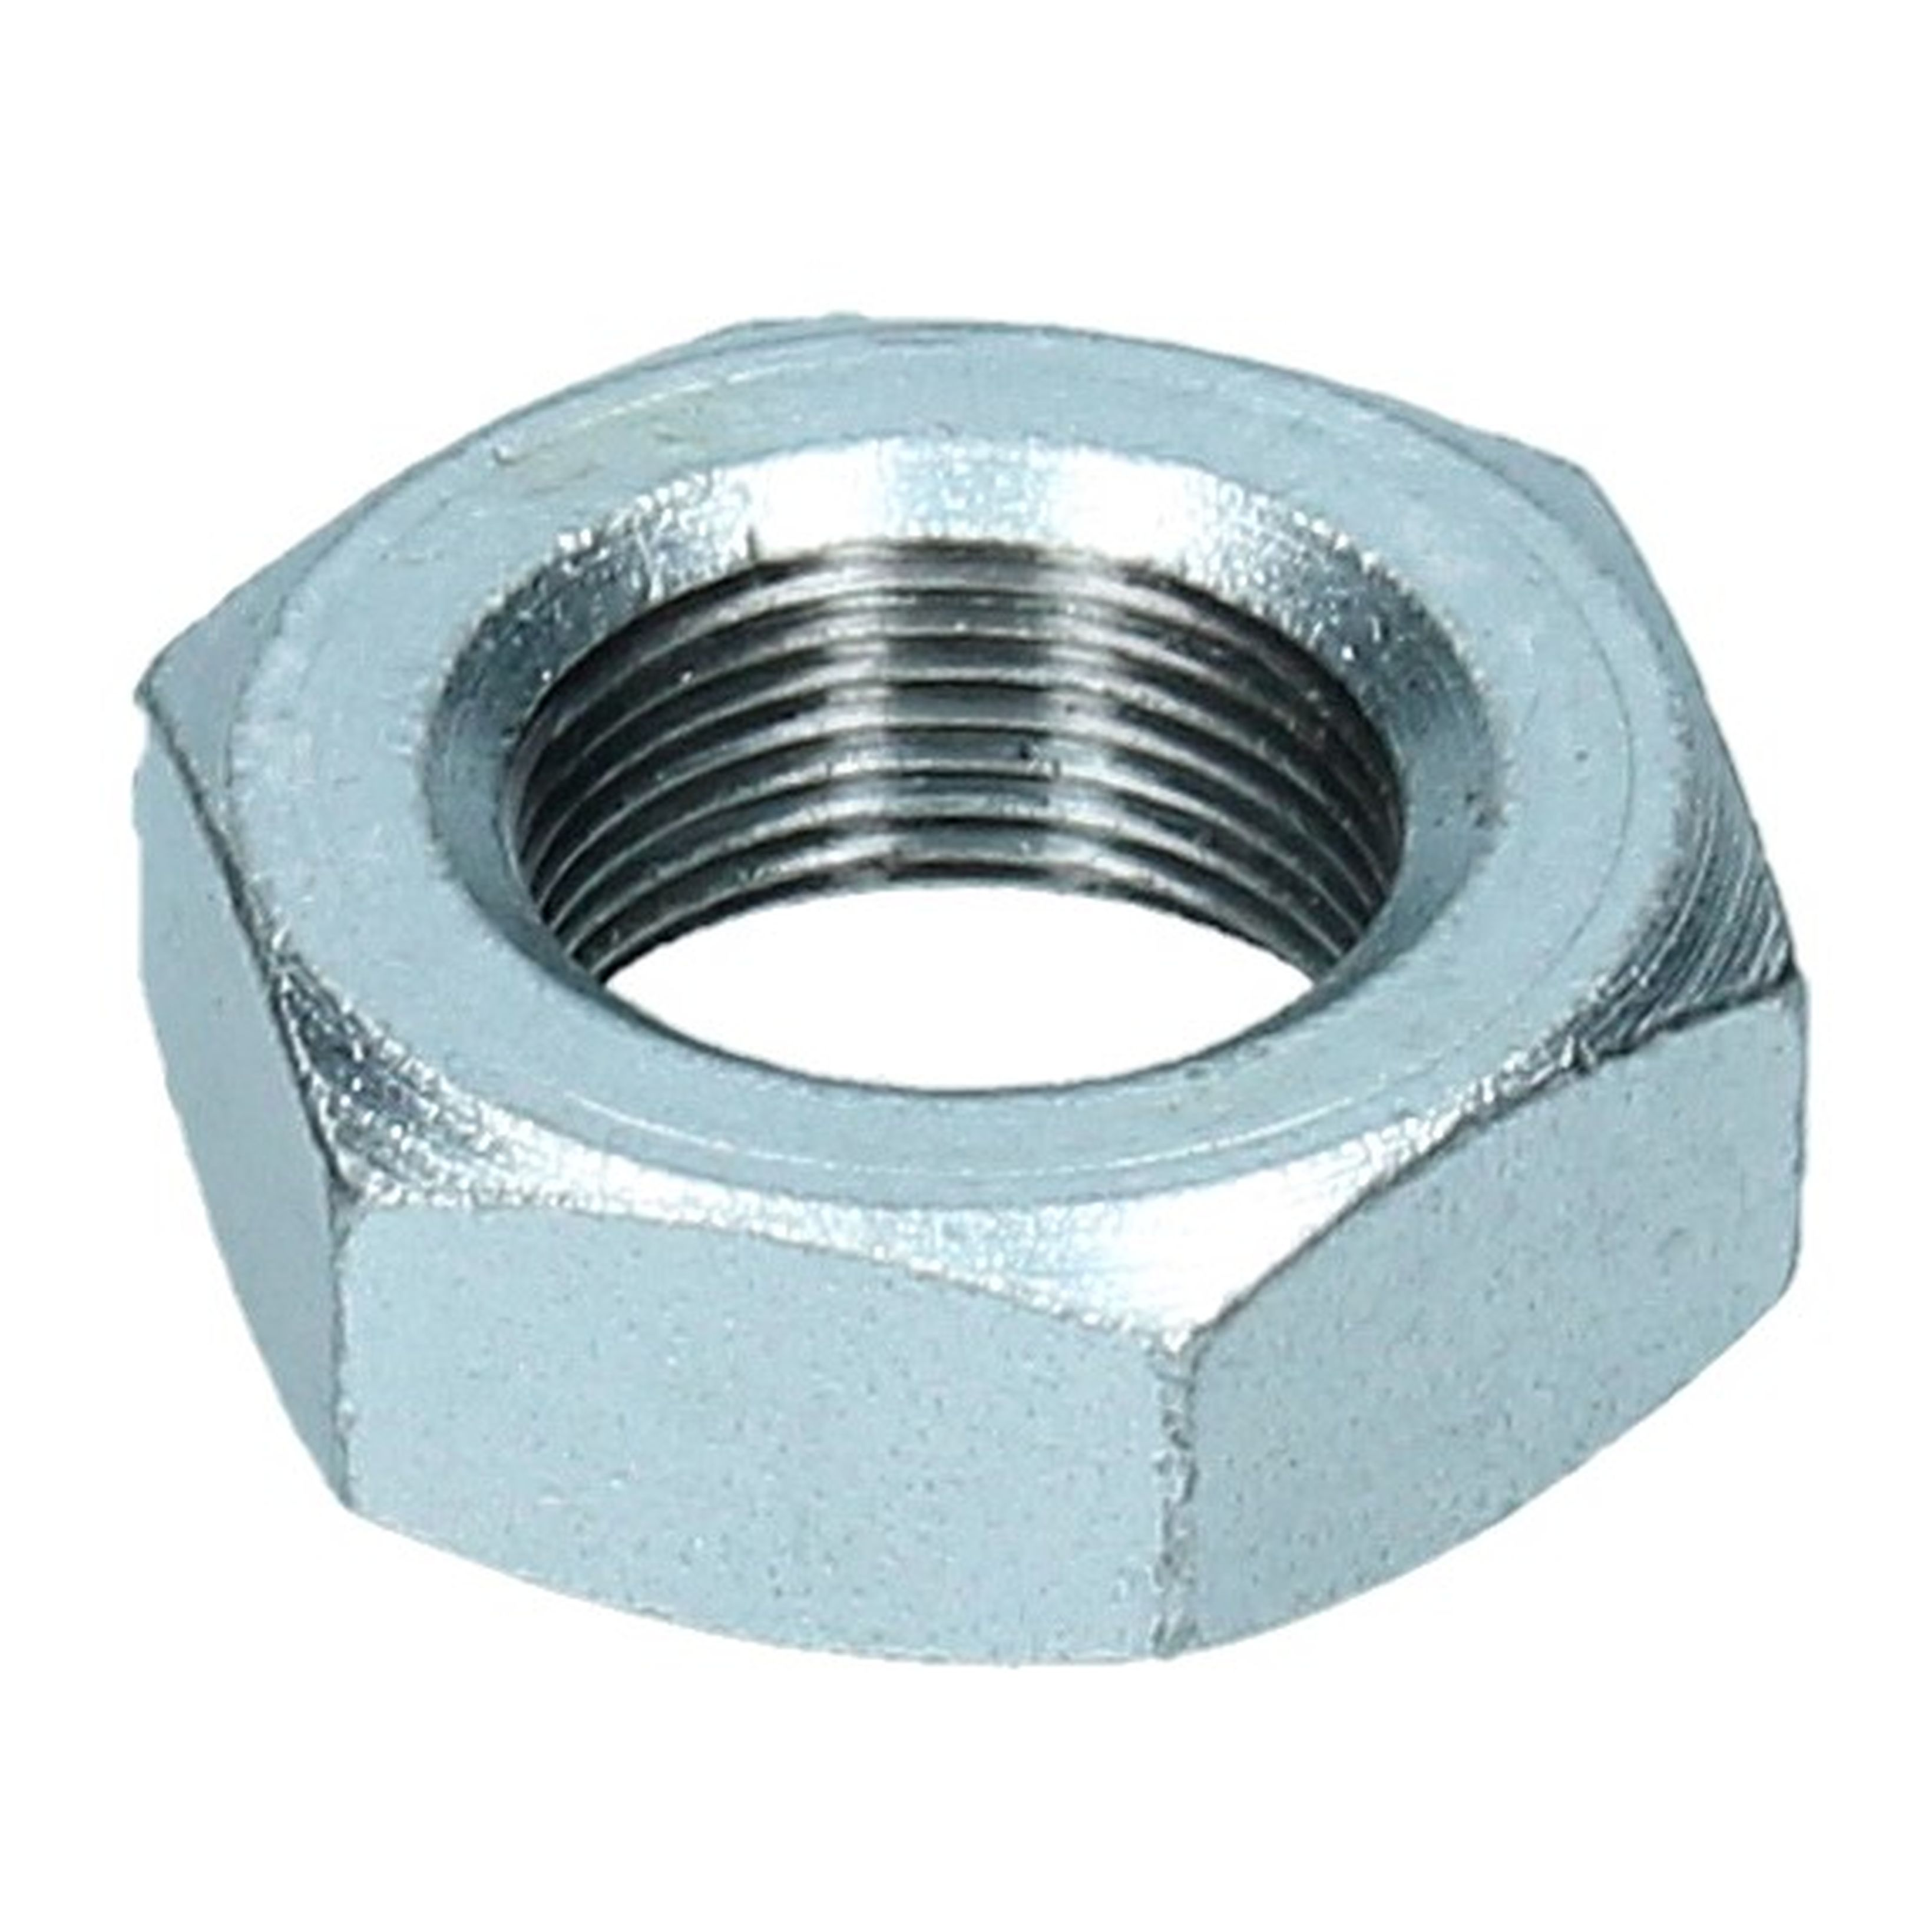 Ferrari Brake Flexi Hose Lock Nut (101413)